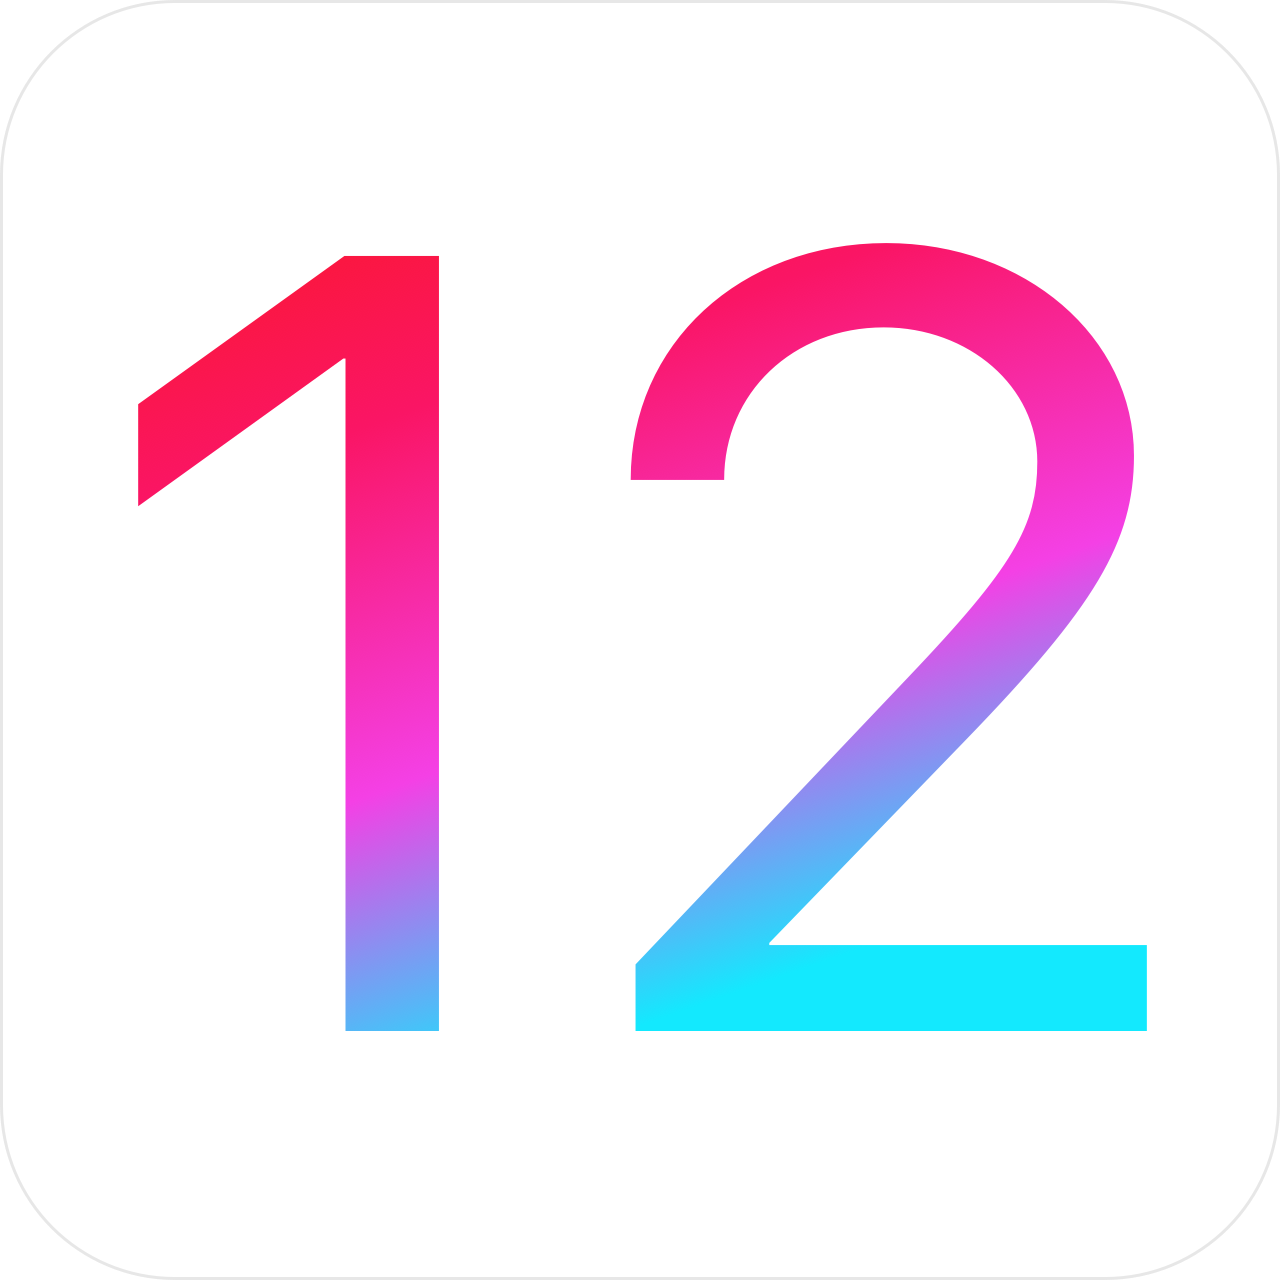 Apple launched ios 12